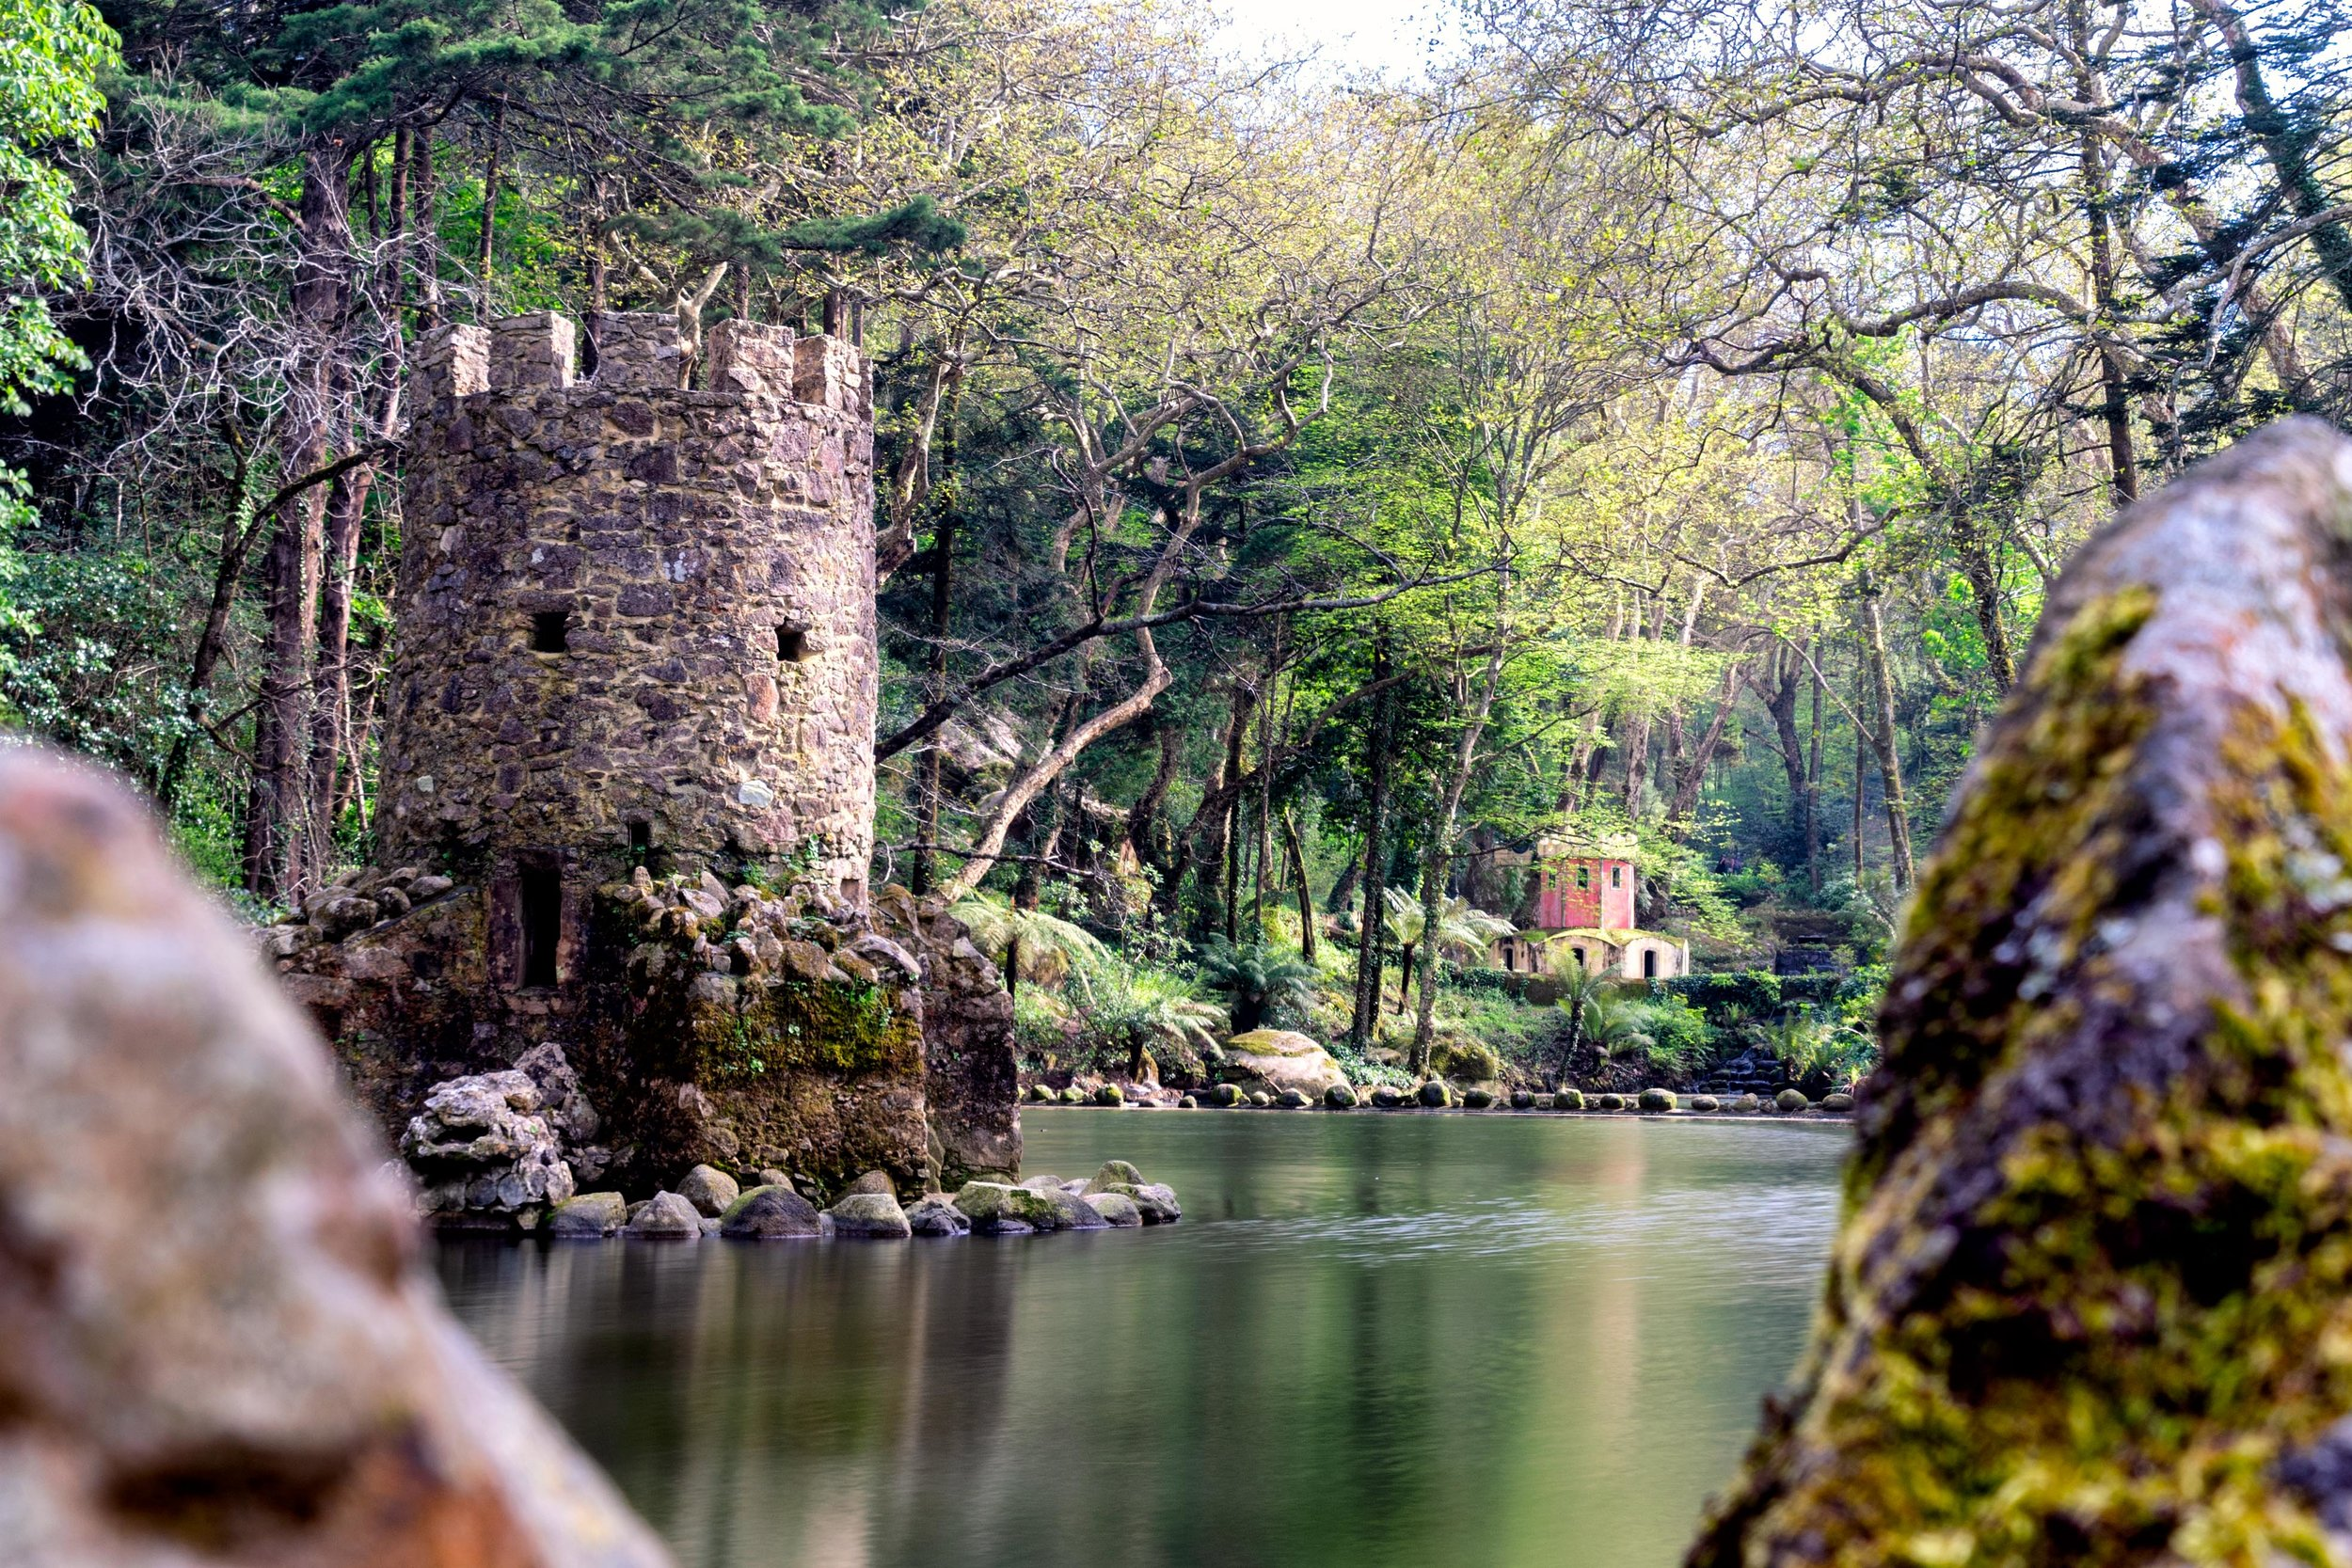 Portugal. Travel. Sintra. Sunshine. Hotel. History. view. room with a view. pena palace.  palace. town. old town. castle. castelo dos mouros. on the bridge. Convent of the Capuchos. lake.jpg